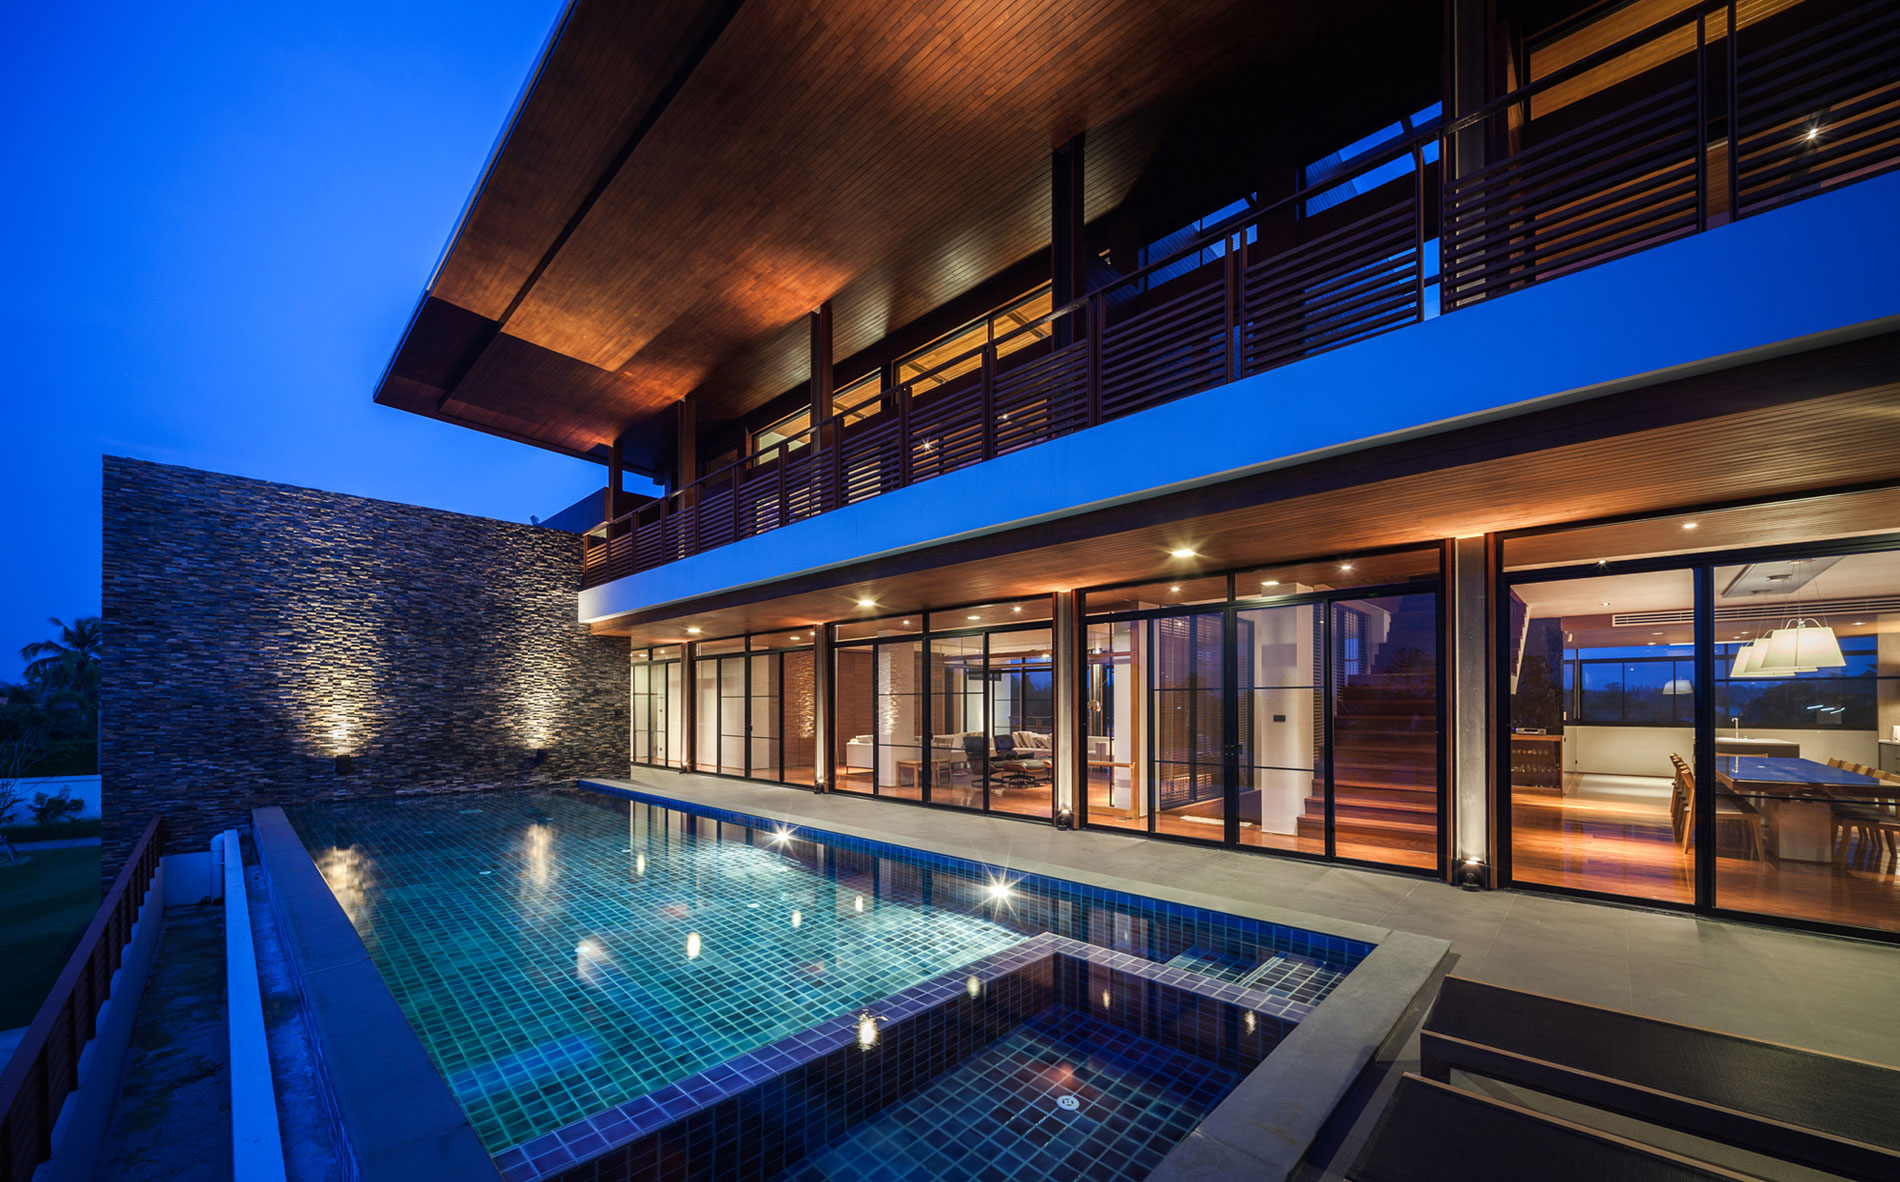 Junsekino Architect and Design Creates a Spacious Contemporary Home in Thailand